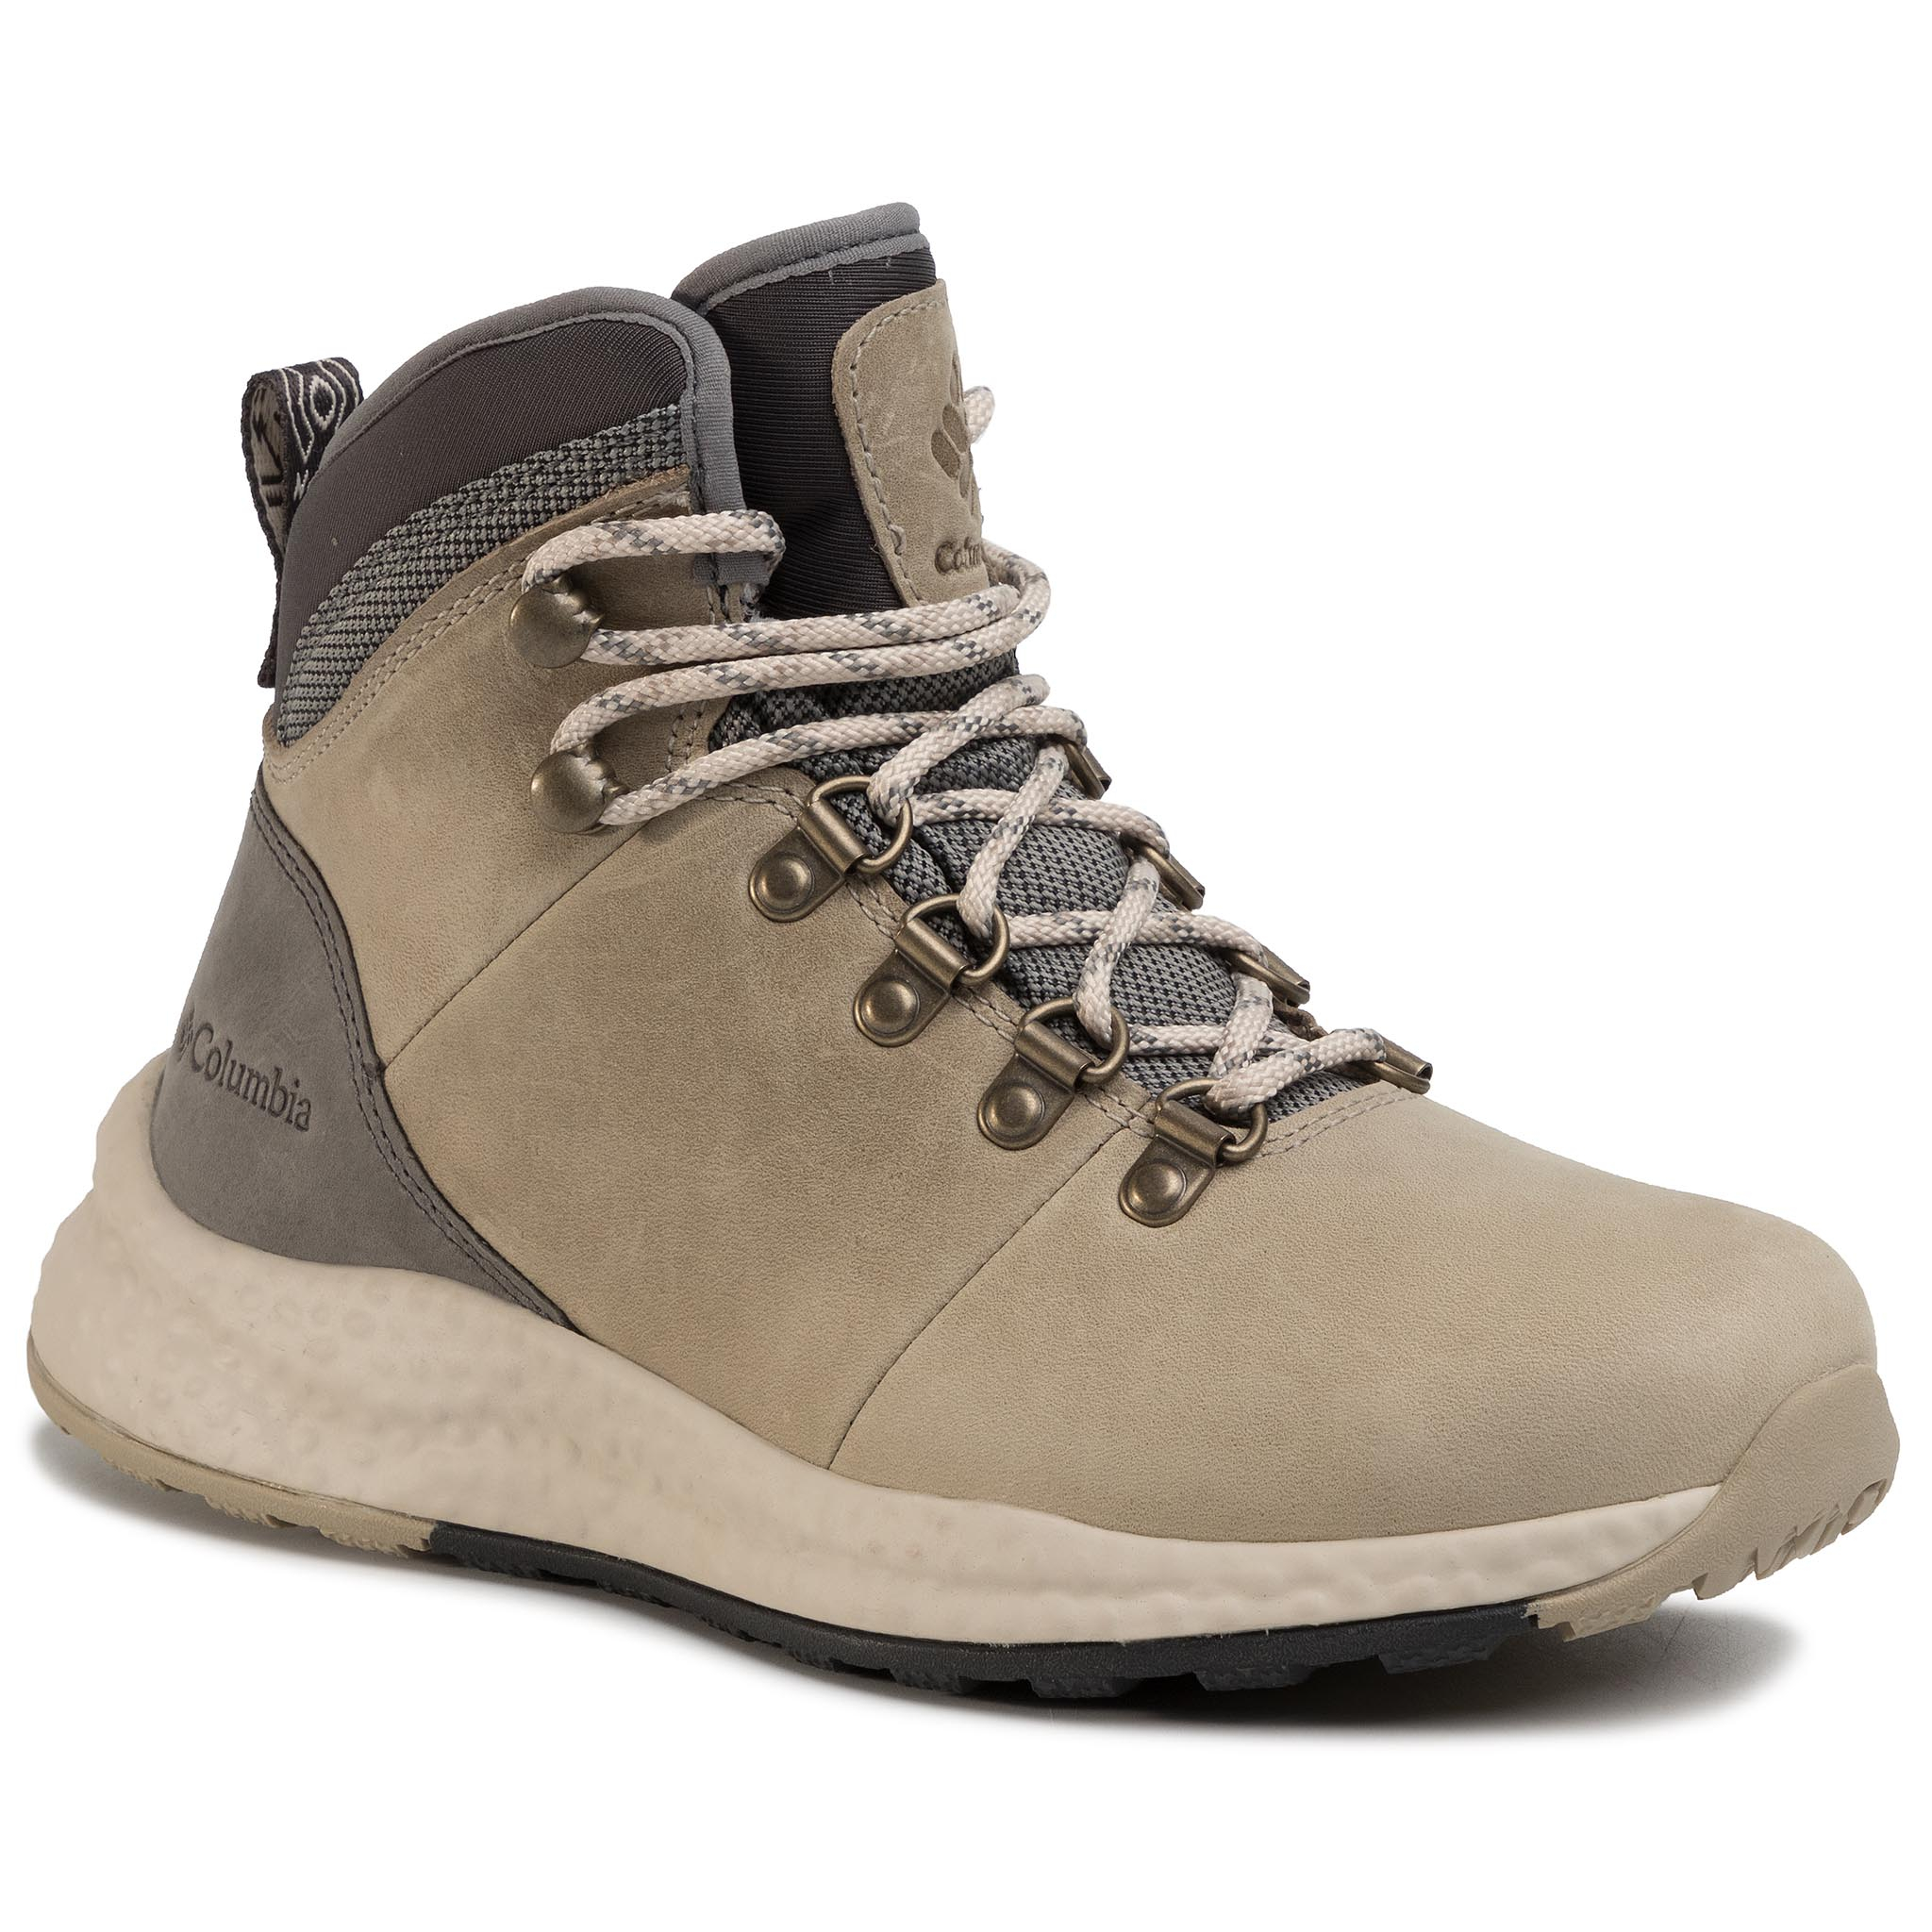 Trekkings Columbia - Sh/Ft Wp Hiker Bl0818 Canvas Tan/Dark Stone 247 imagine epantofi.ro 2021